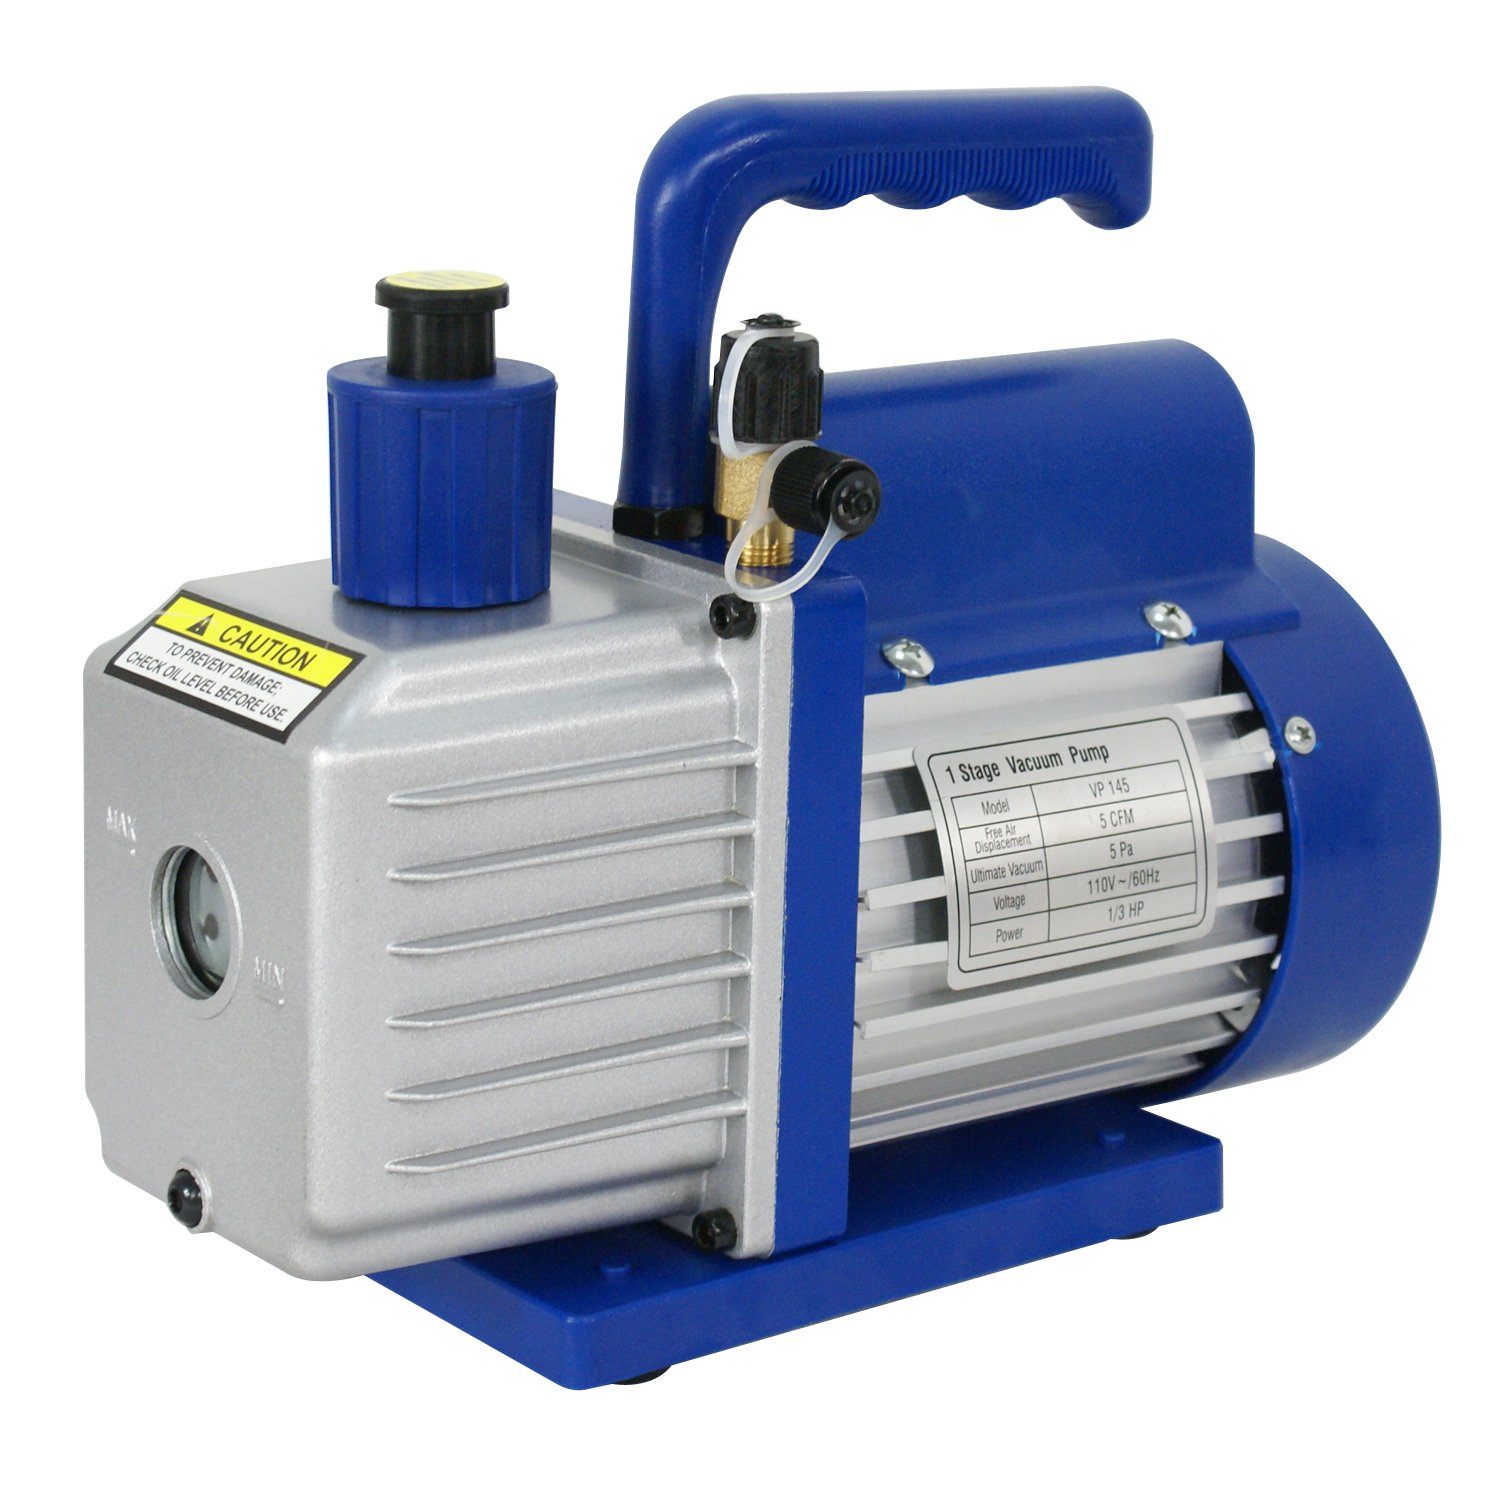 ZENY 5CFM Single-Stage 5 Pa Rotary Vane Economy Vacuum Pump 1//3HP Air Conditioner Refrigerant HVAC Air Tool VP145 Blue